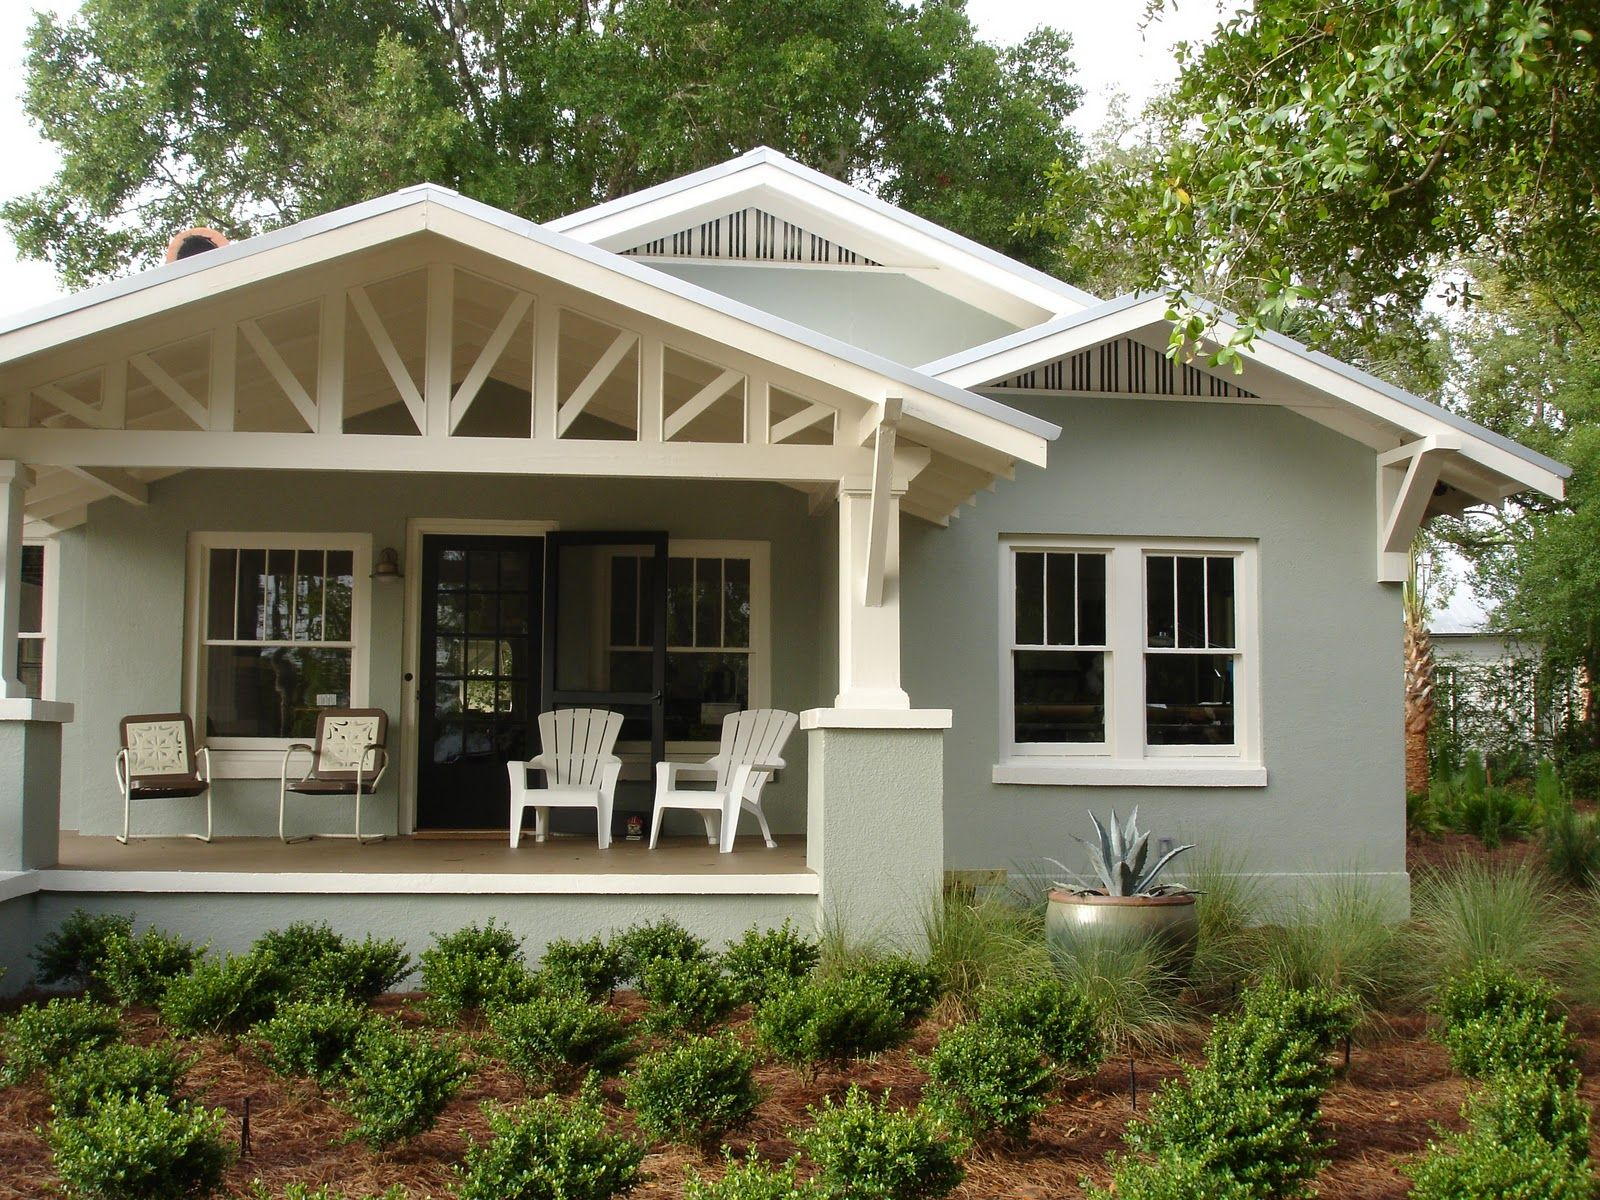 this is just a cute house with a perfect porch Clean and Simple